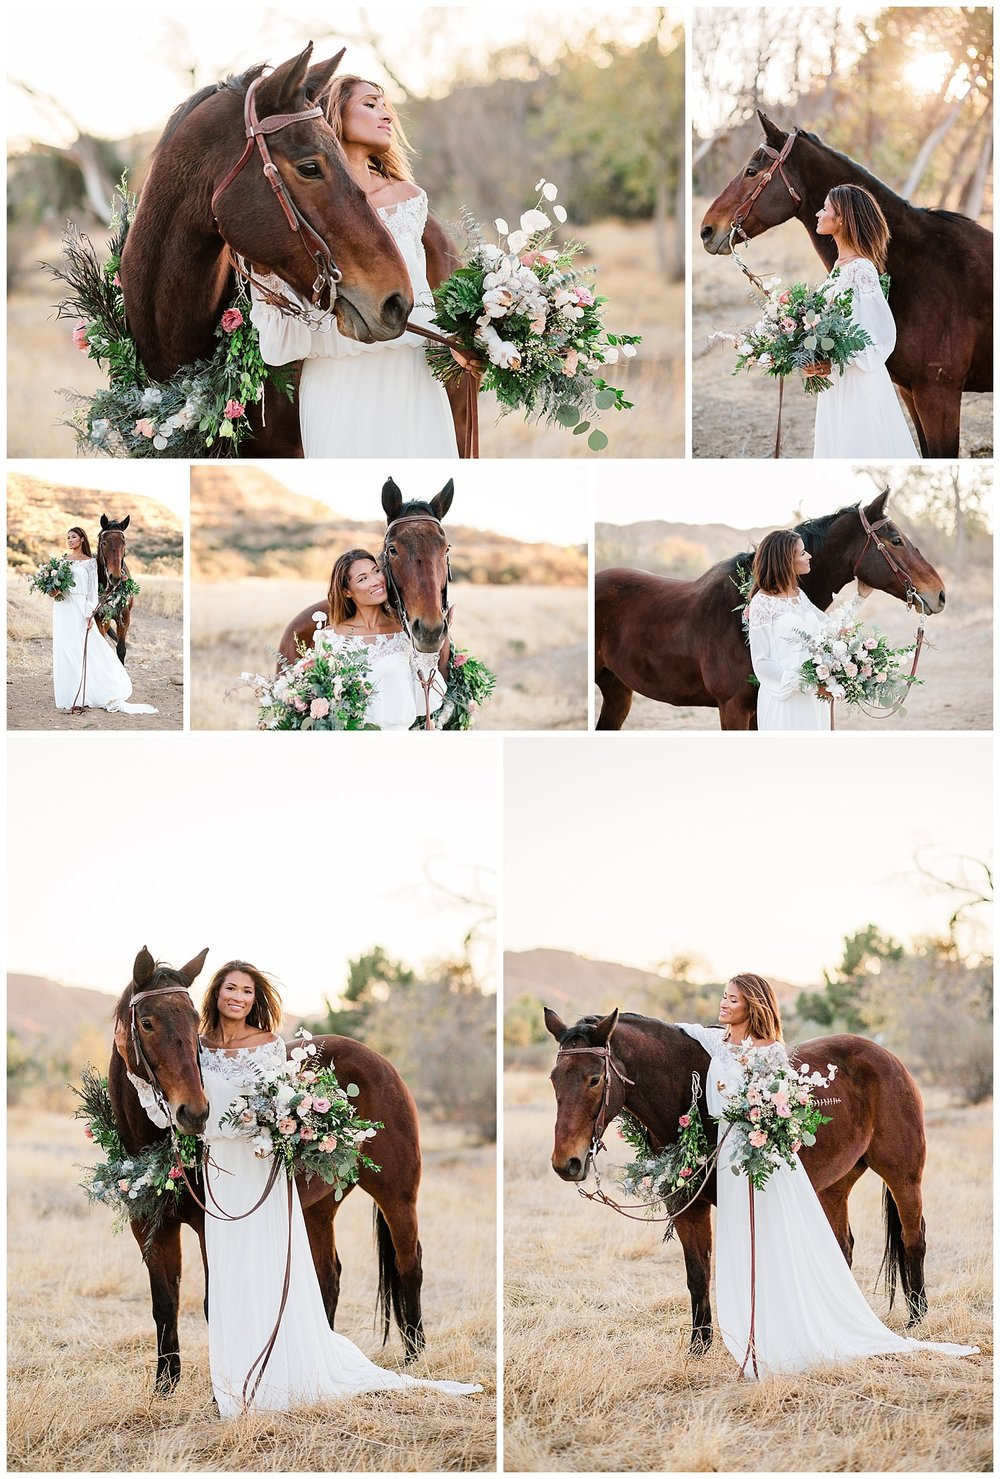 Sara Shier Photography Wedding Equine Horse Equestrian Photographer Southern California Los Angeles Orange County San Diego